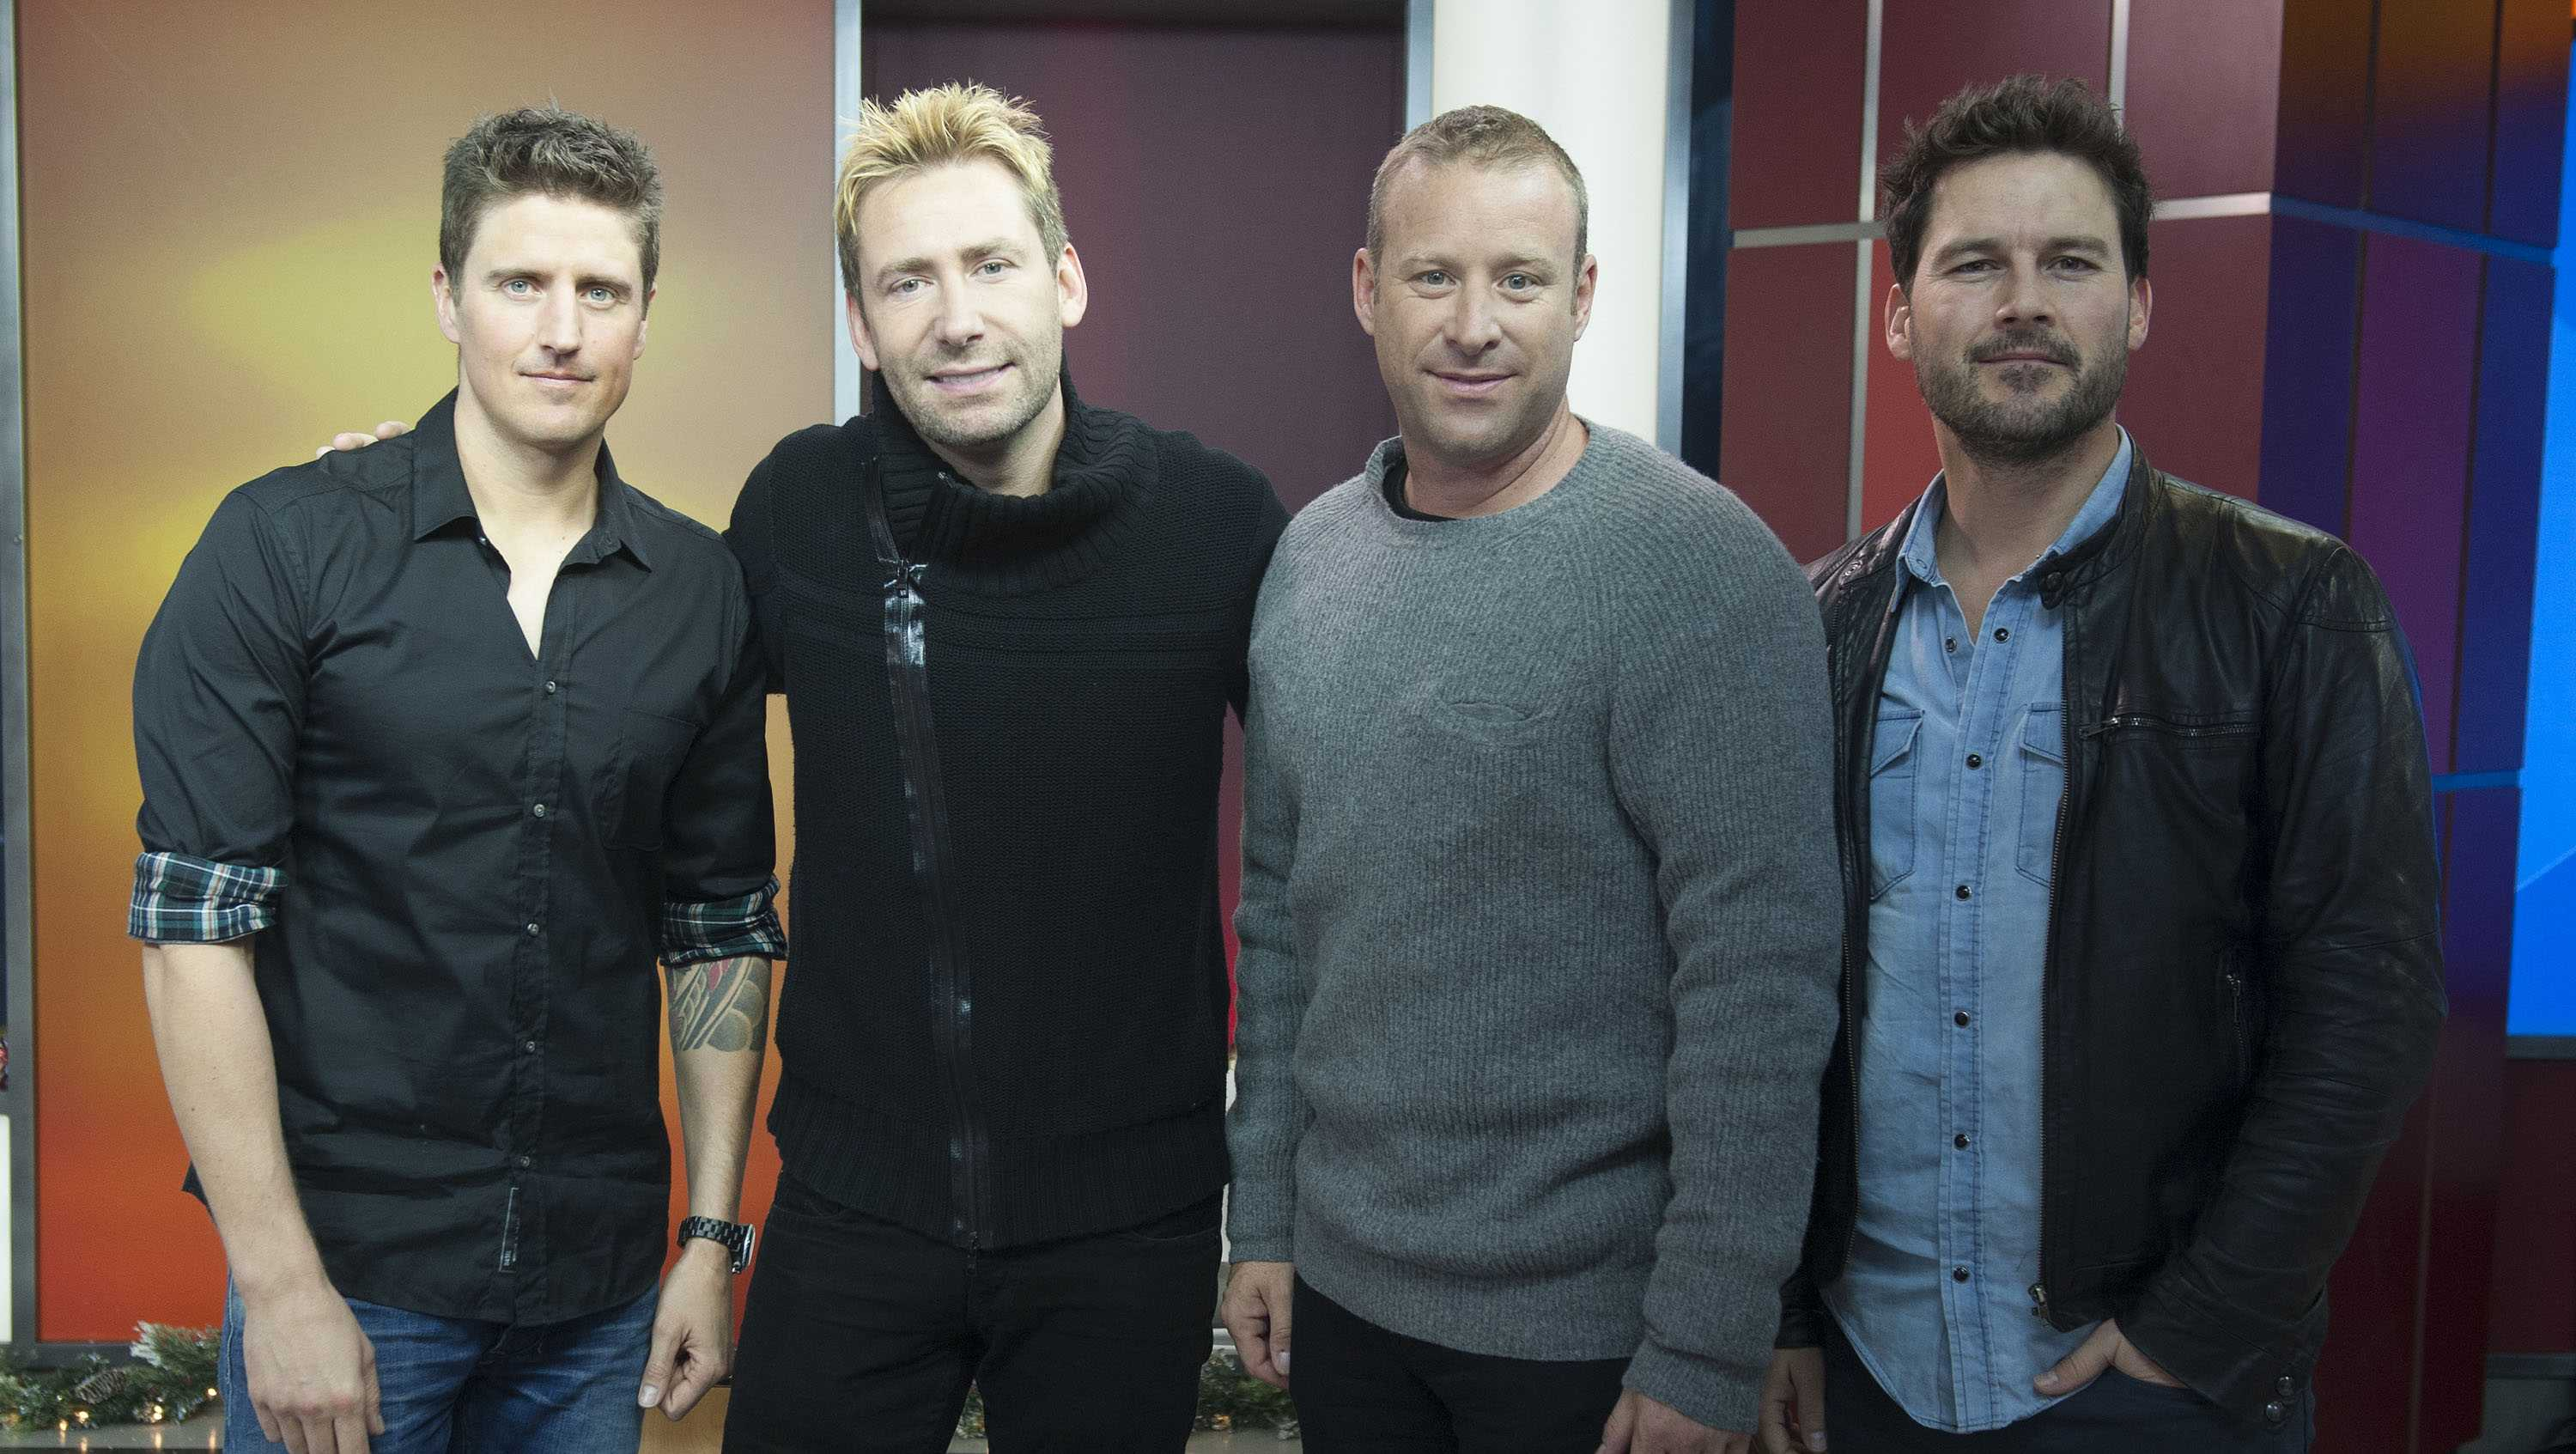 Musician Daniel Adair, singer Chad Kroeger and musicians Mike Kroeger and Ryan Peake of Nickelback seen on The Morning Show on Thursday, Nov. 21, 2014 in Toronto, Canada.